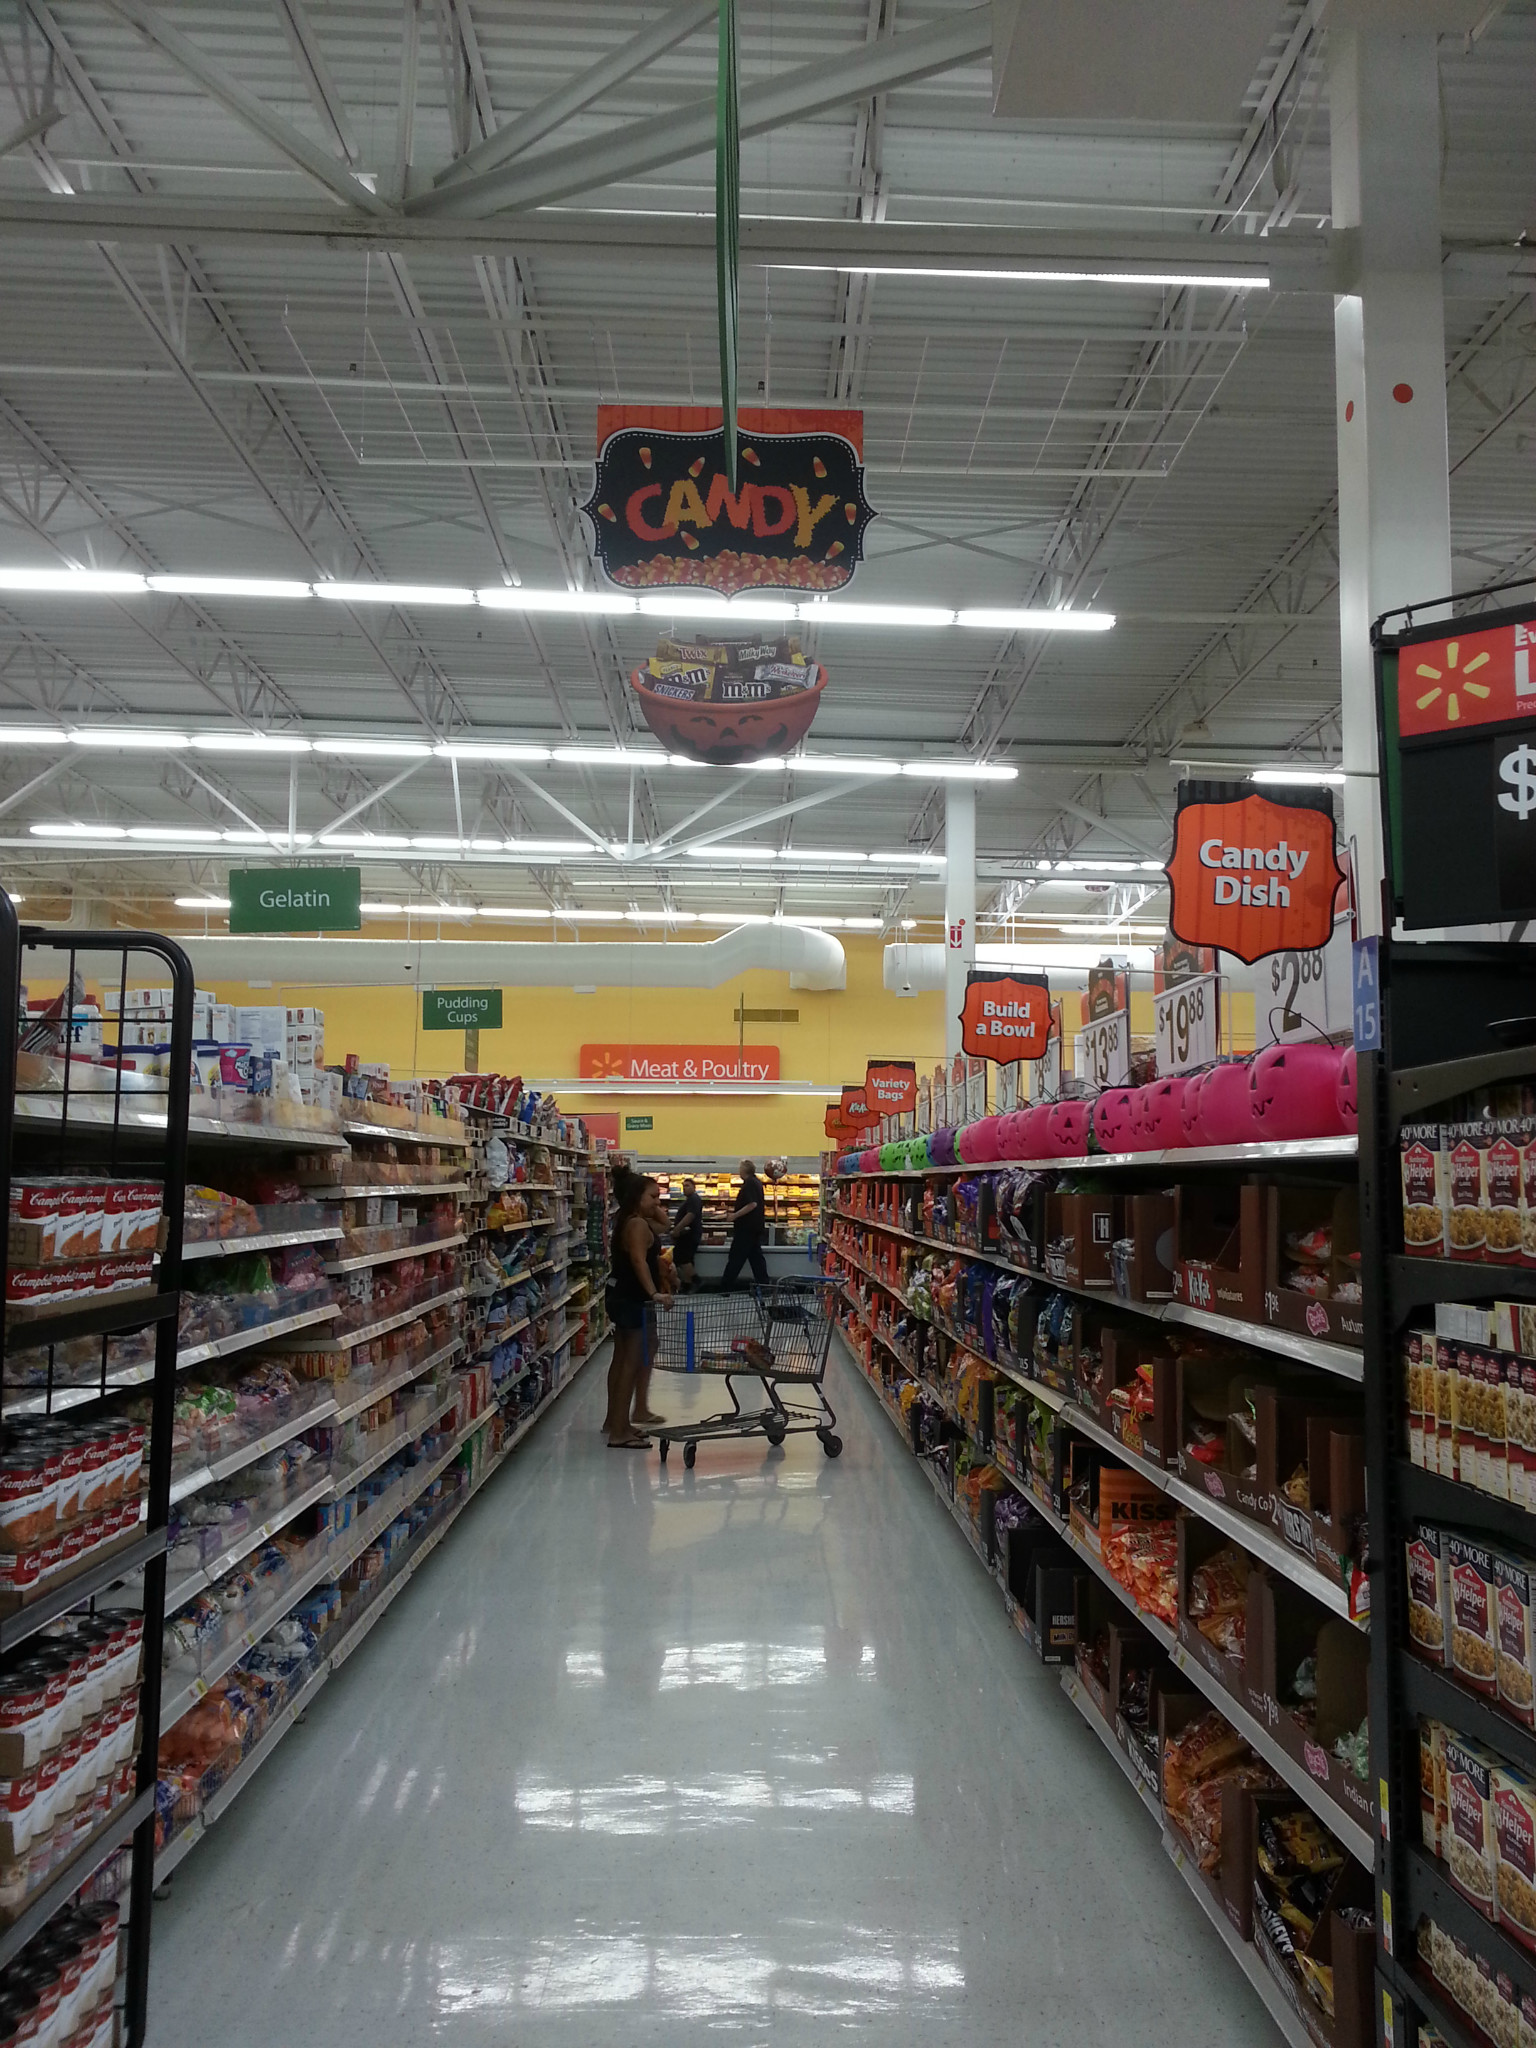 Photo: While browsing the candy isle I ran into a couple who started asking me if I was having a girl by the way I was carrying.